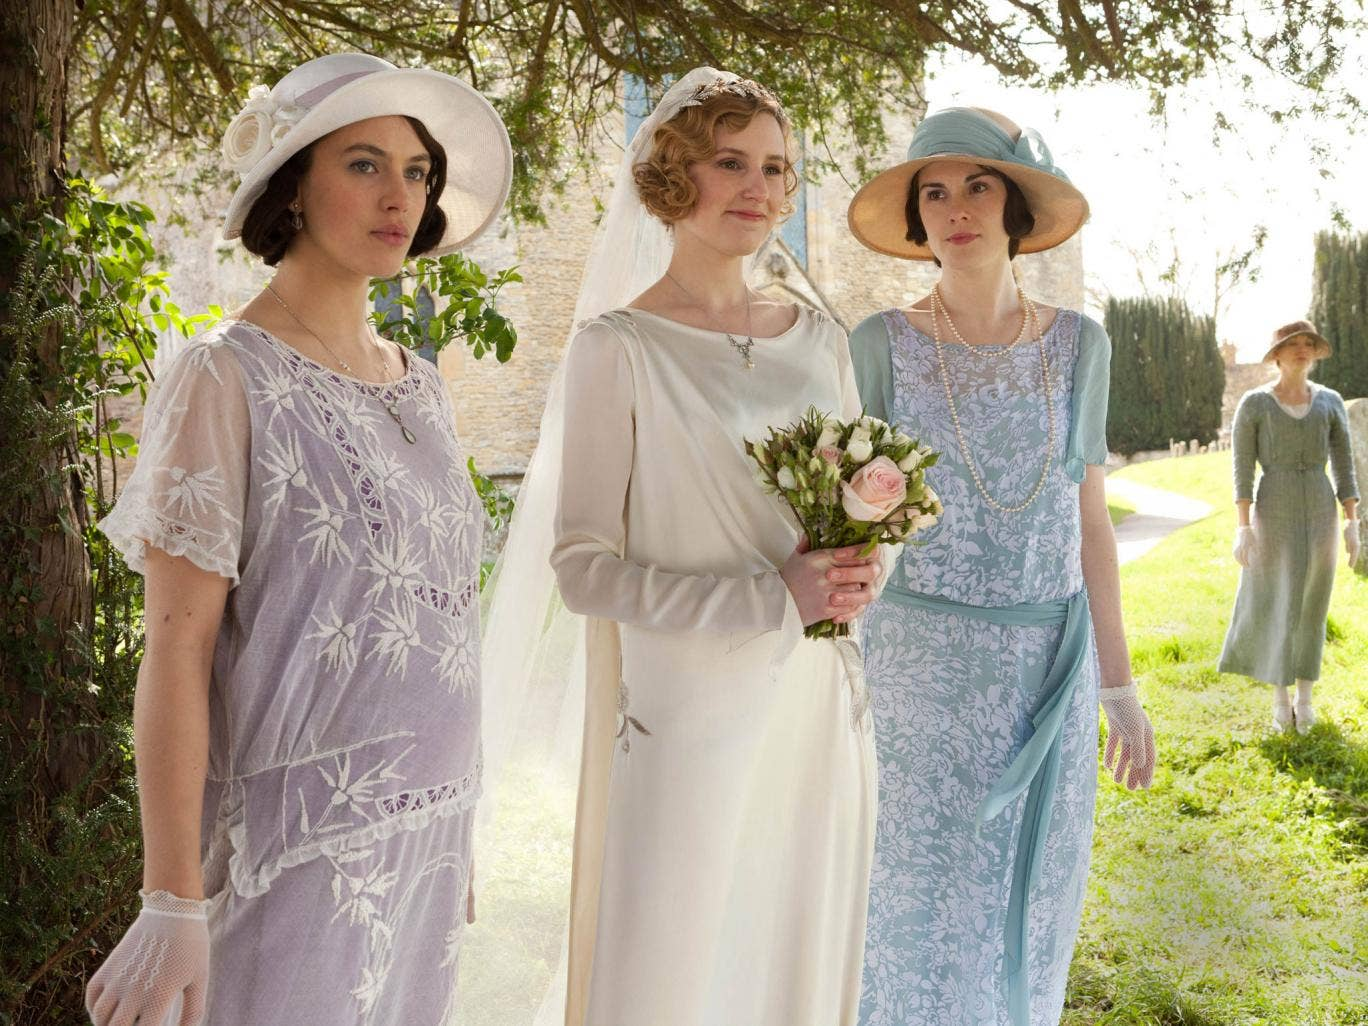 NBC has just announced plans to release a Downton Abbey clothing line